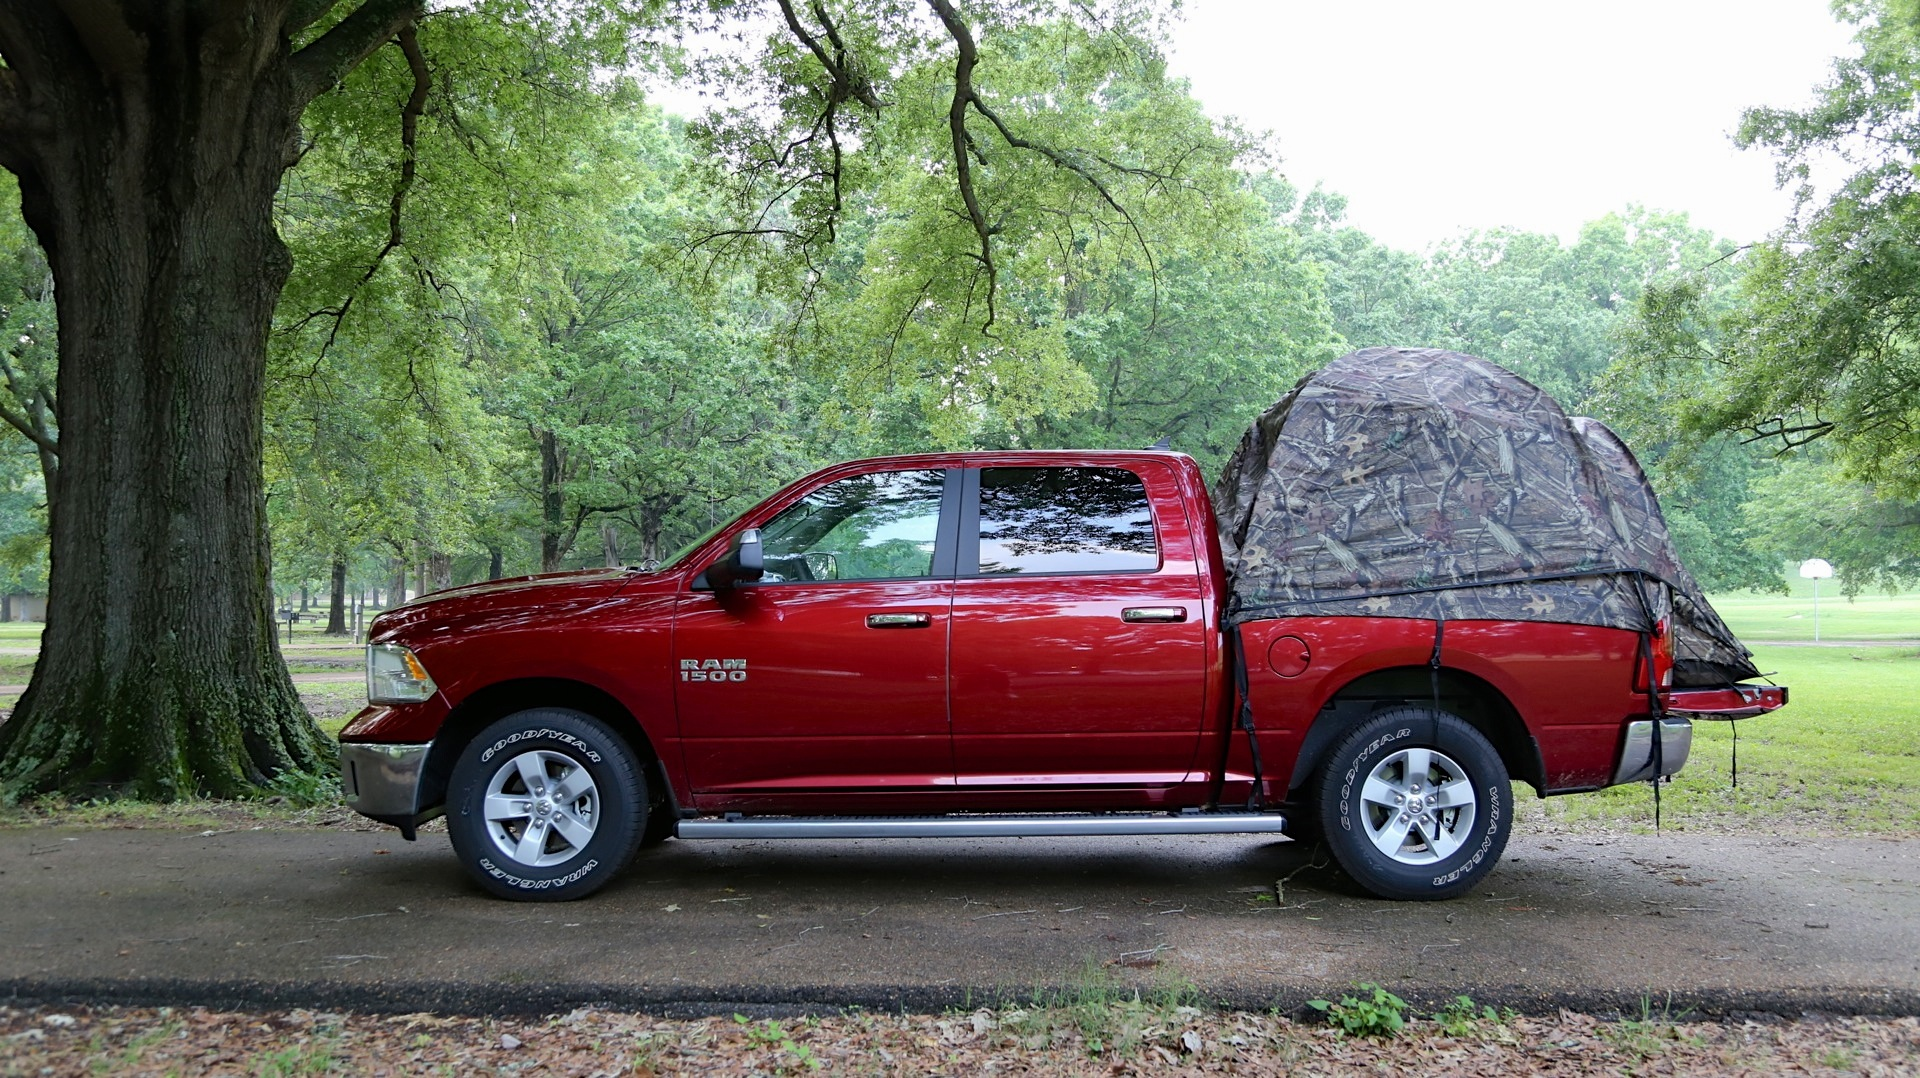 & 30 Days Of 2013 Ram 1500: Camping In Your Truck